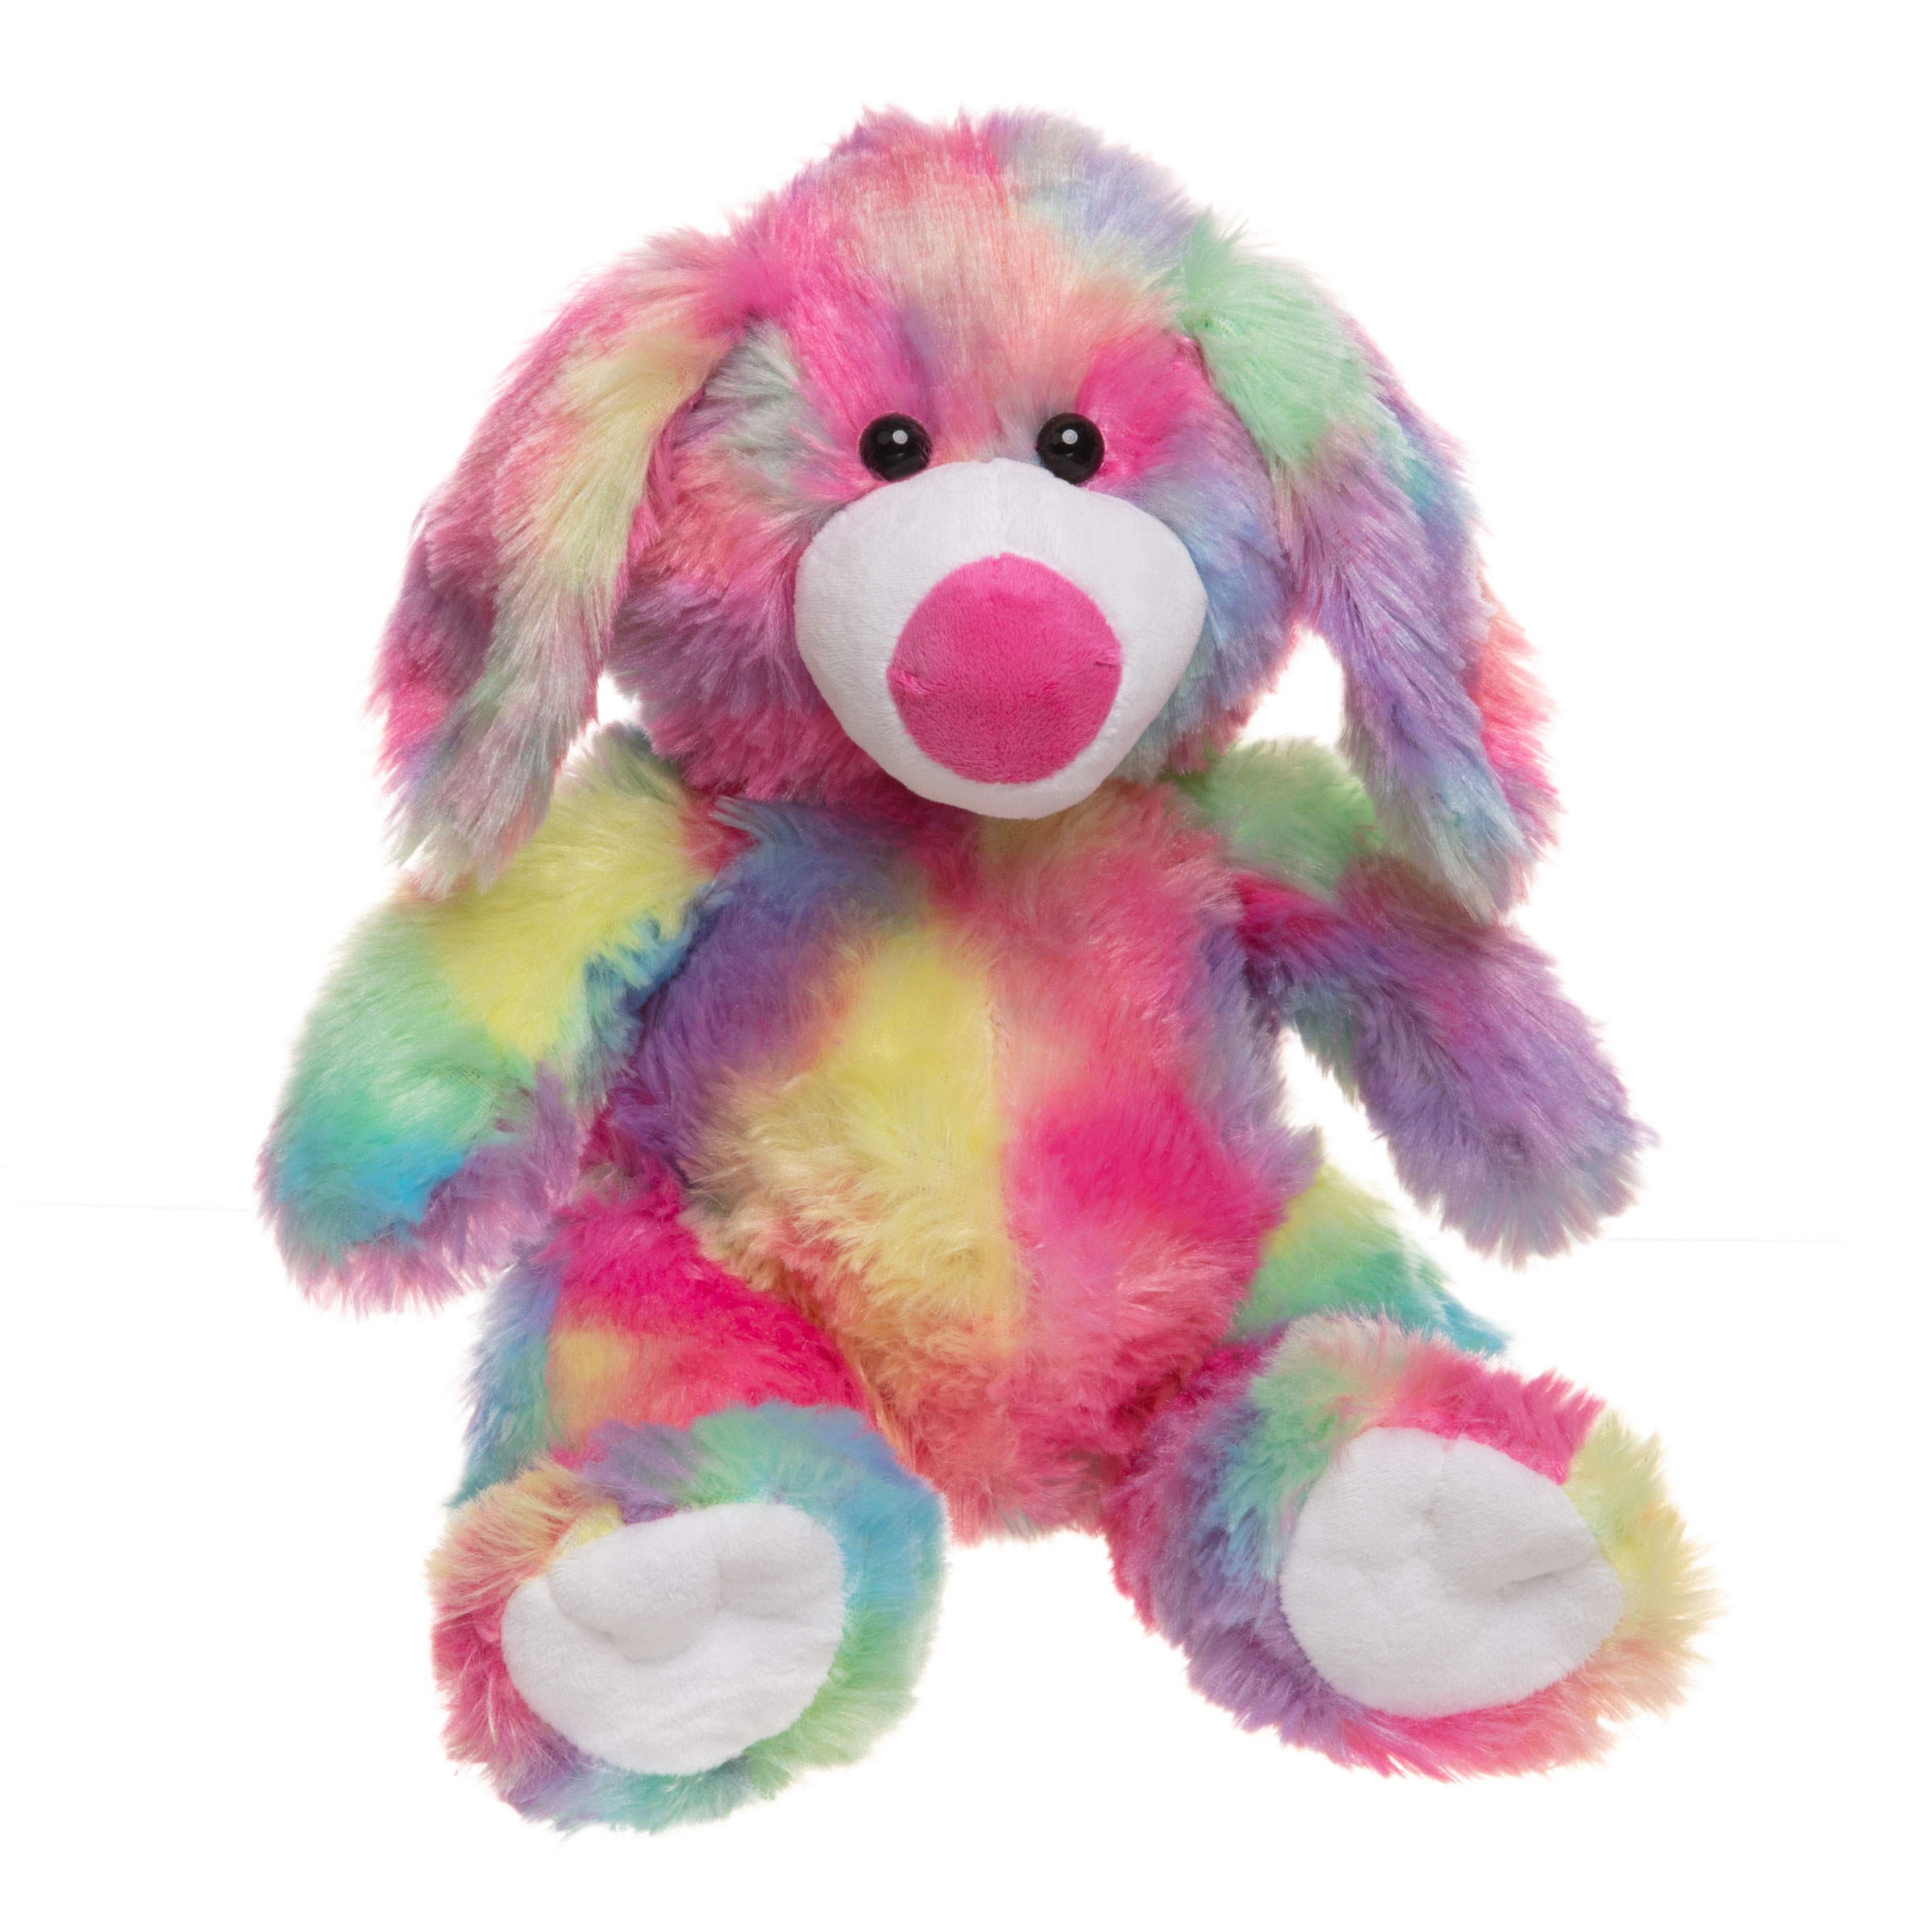 Sherbet the Rainbow Dog Teddy Bear